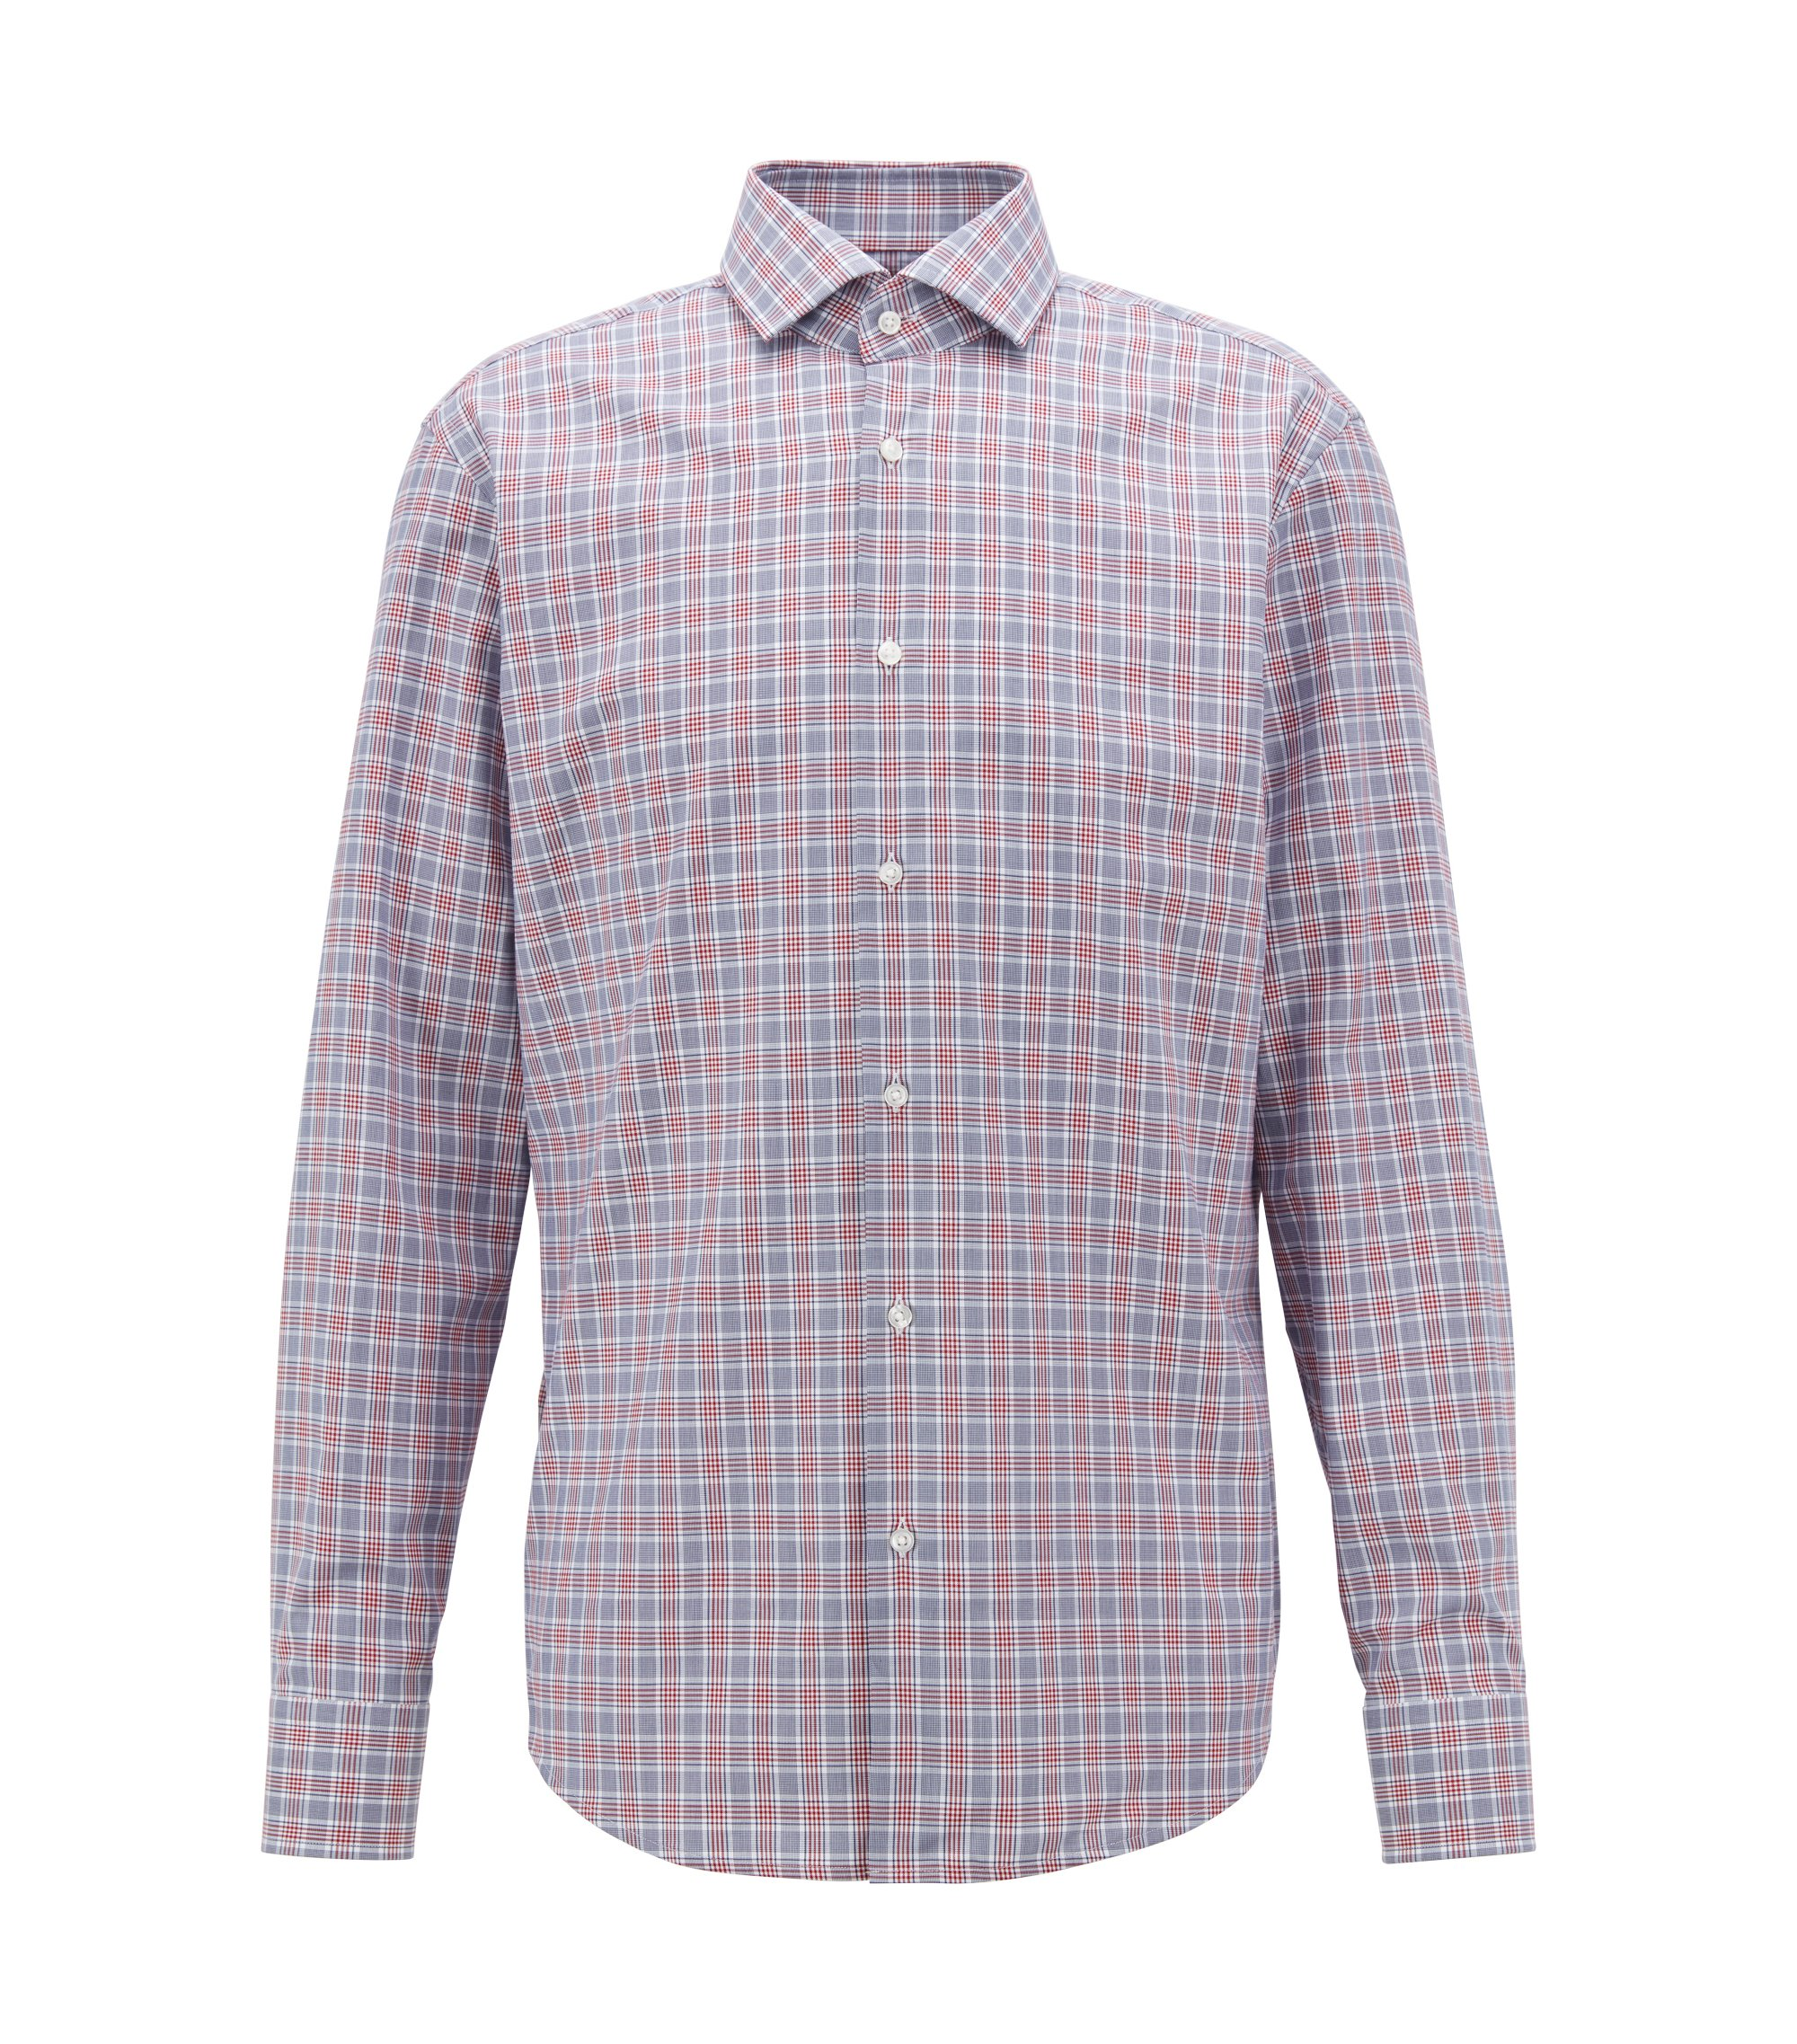 Camicia regular fit in twill di cotone a quadri Vichy, Rosso scuro